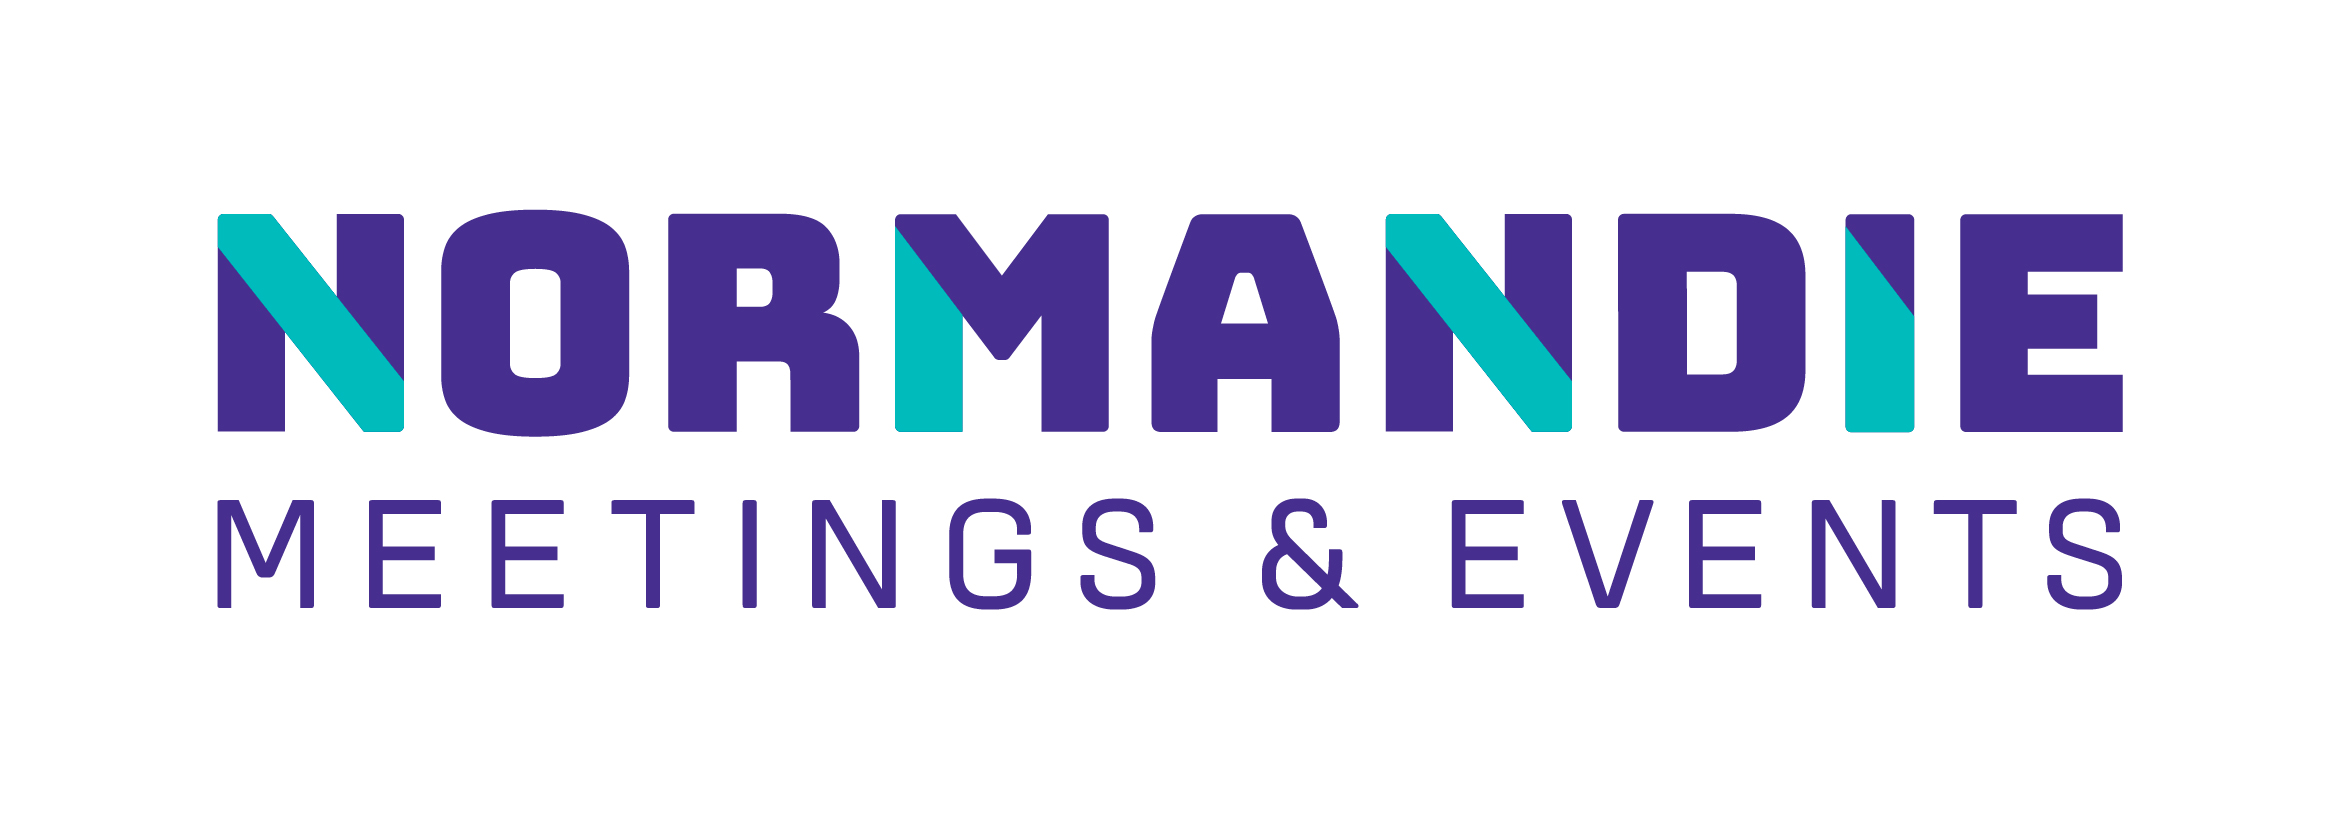 normandie-meeting-events-rvb-web-hd-png